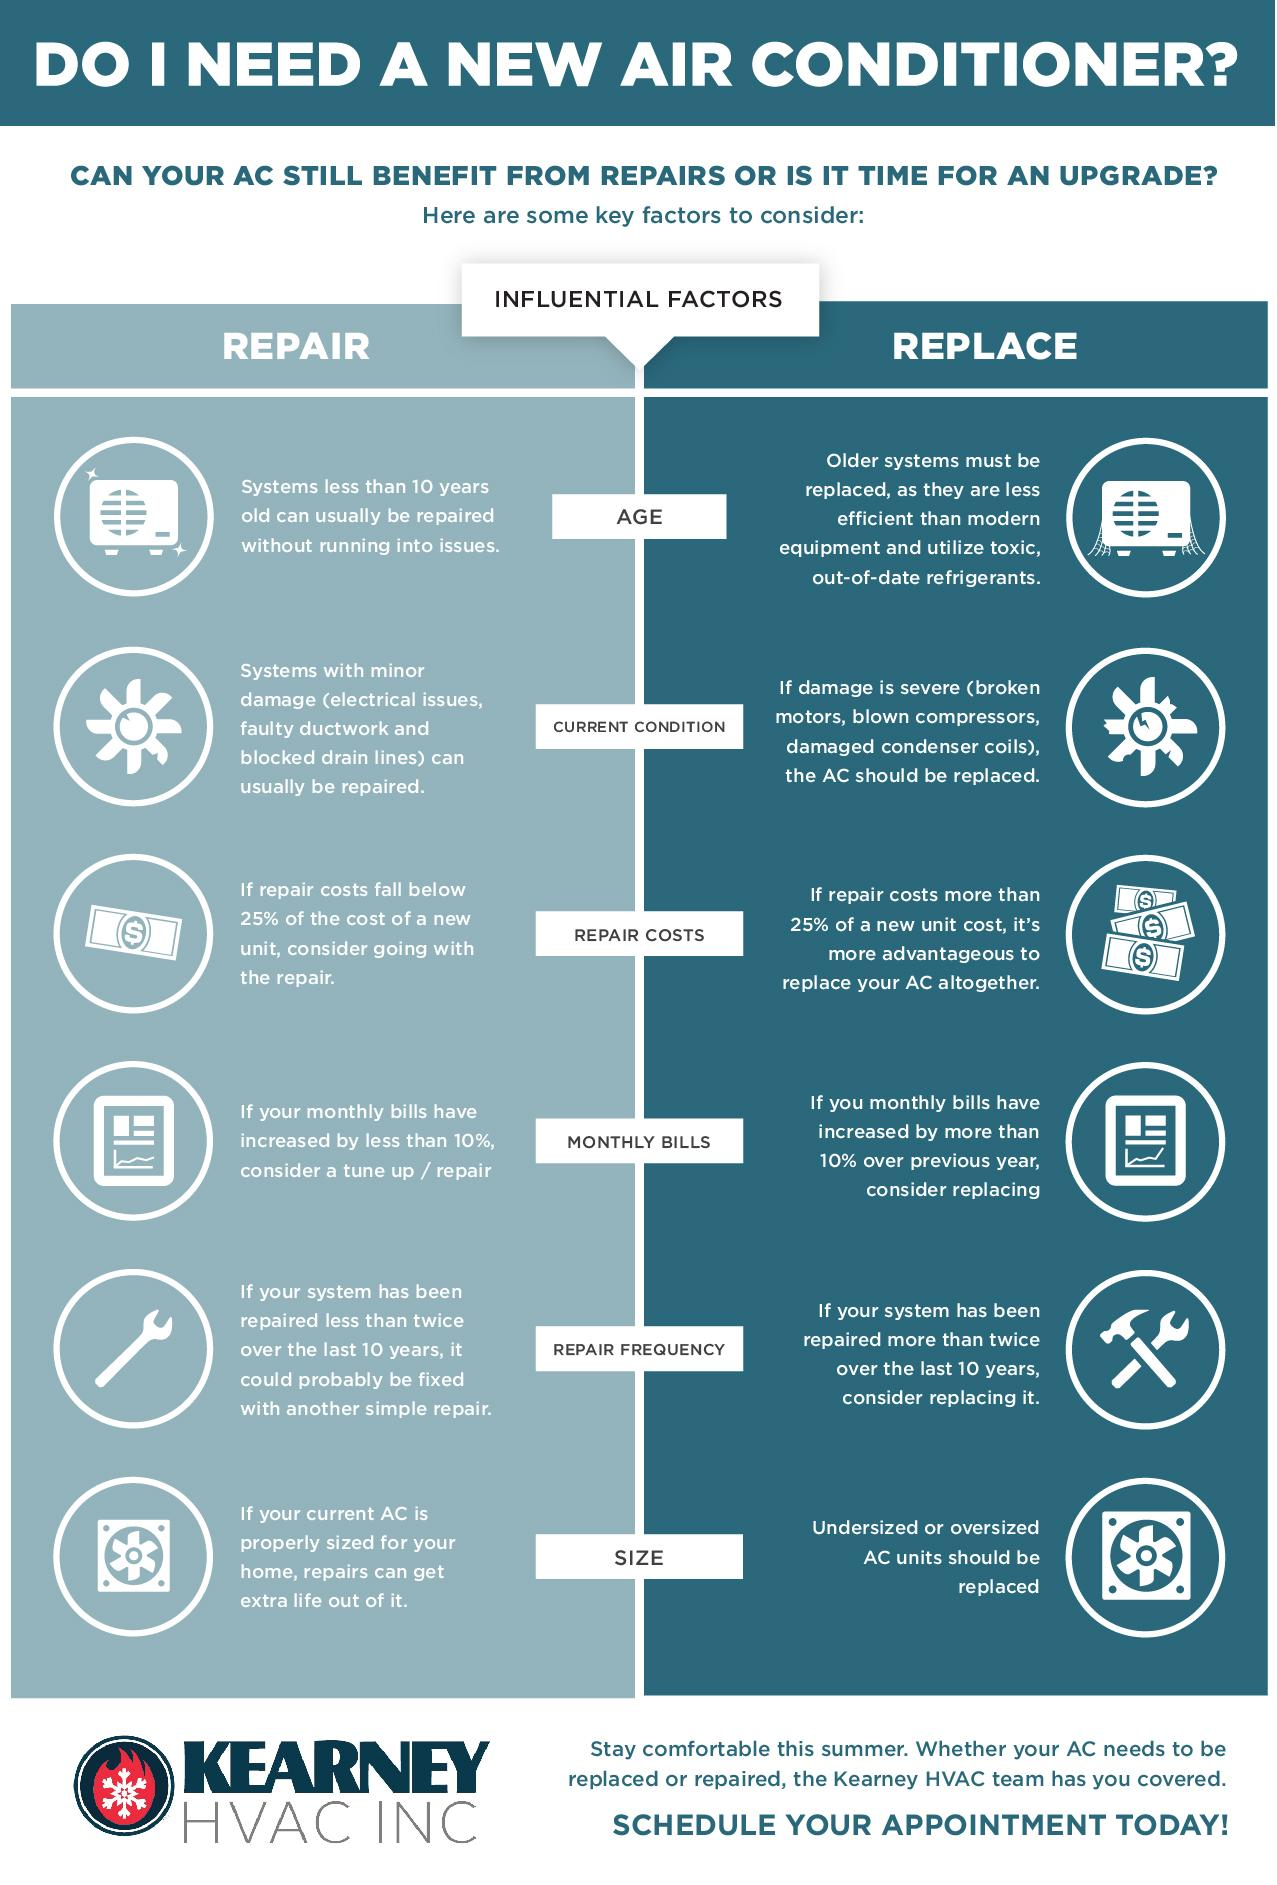 Infographic comparing repairing vs replacing air conditioning